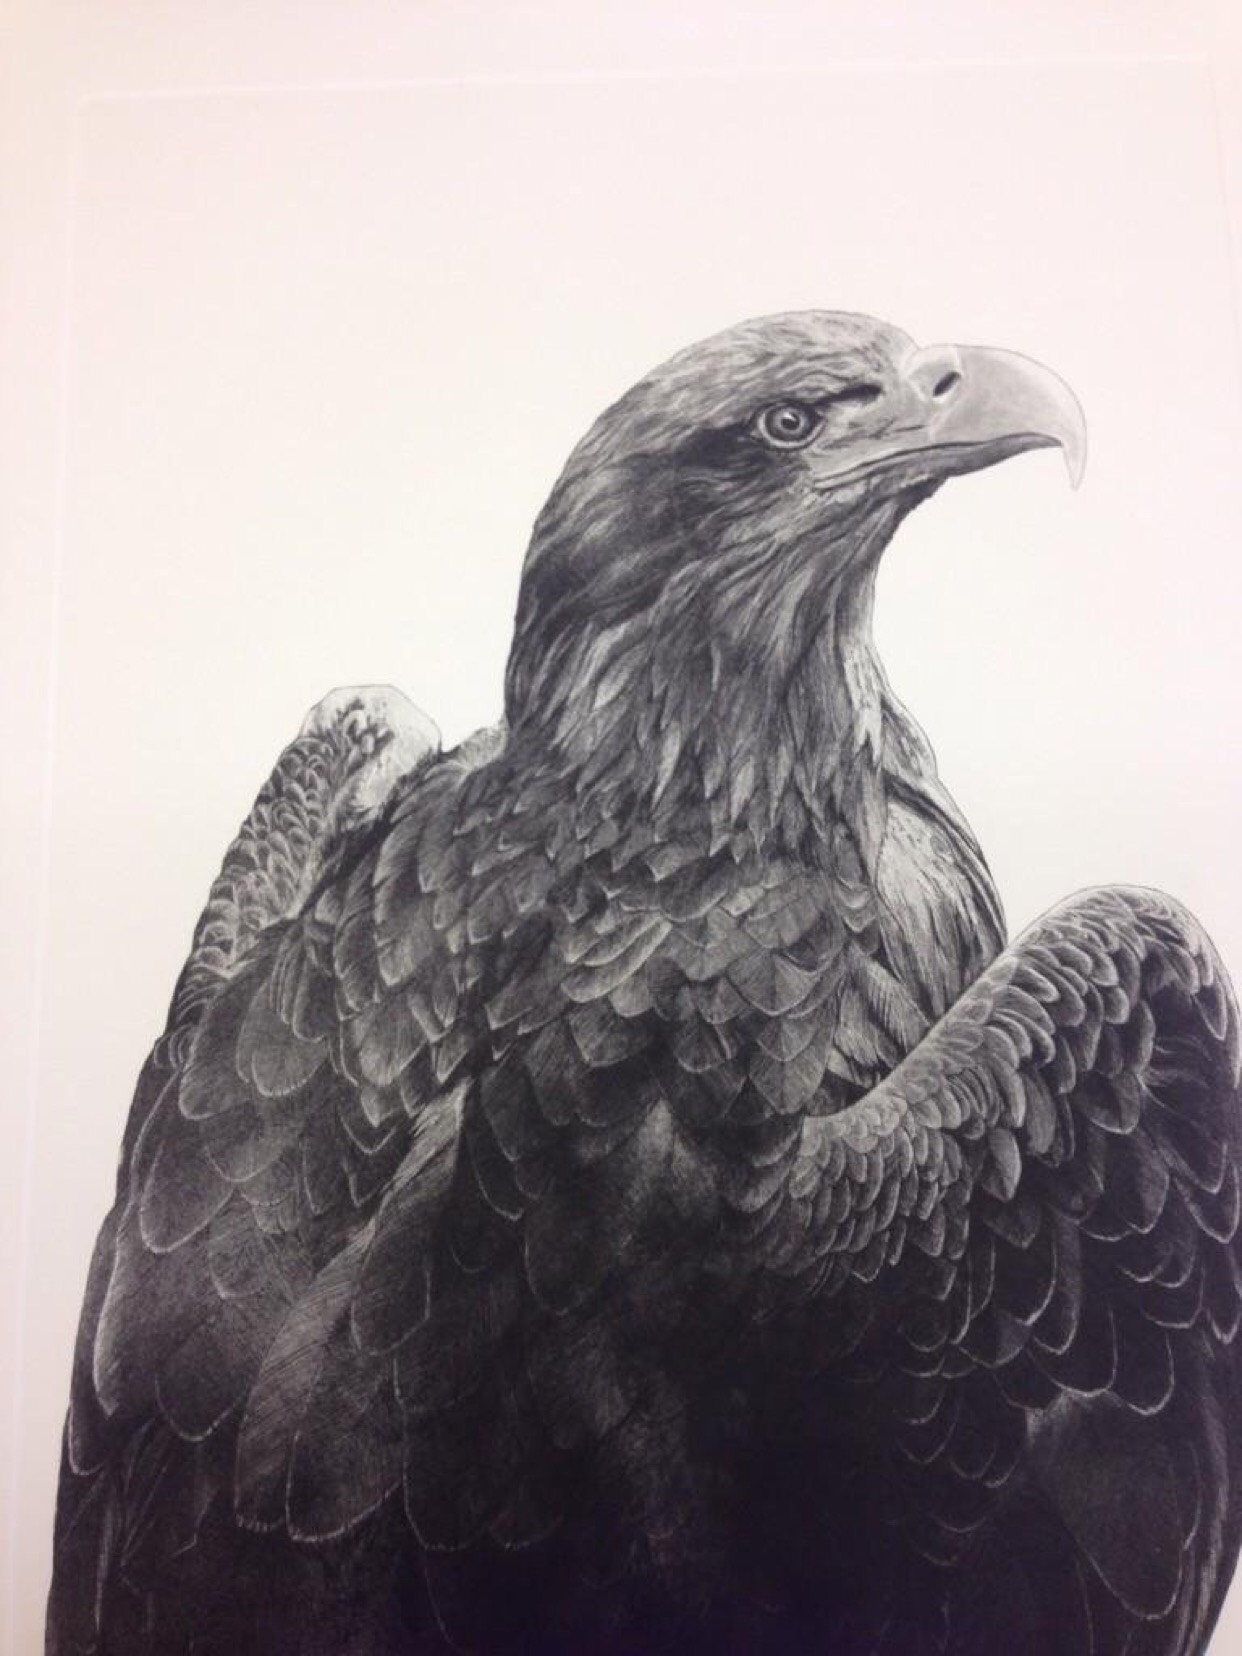 White Tailed Eagle  etching and aquatint  Unframed £500 Size 60 cm x 43.75 cm  Framed £590 Size